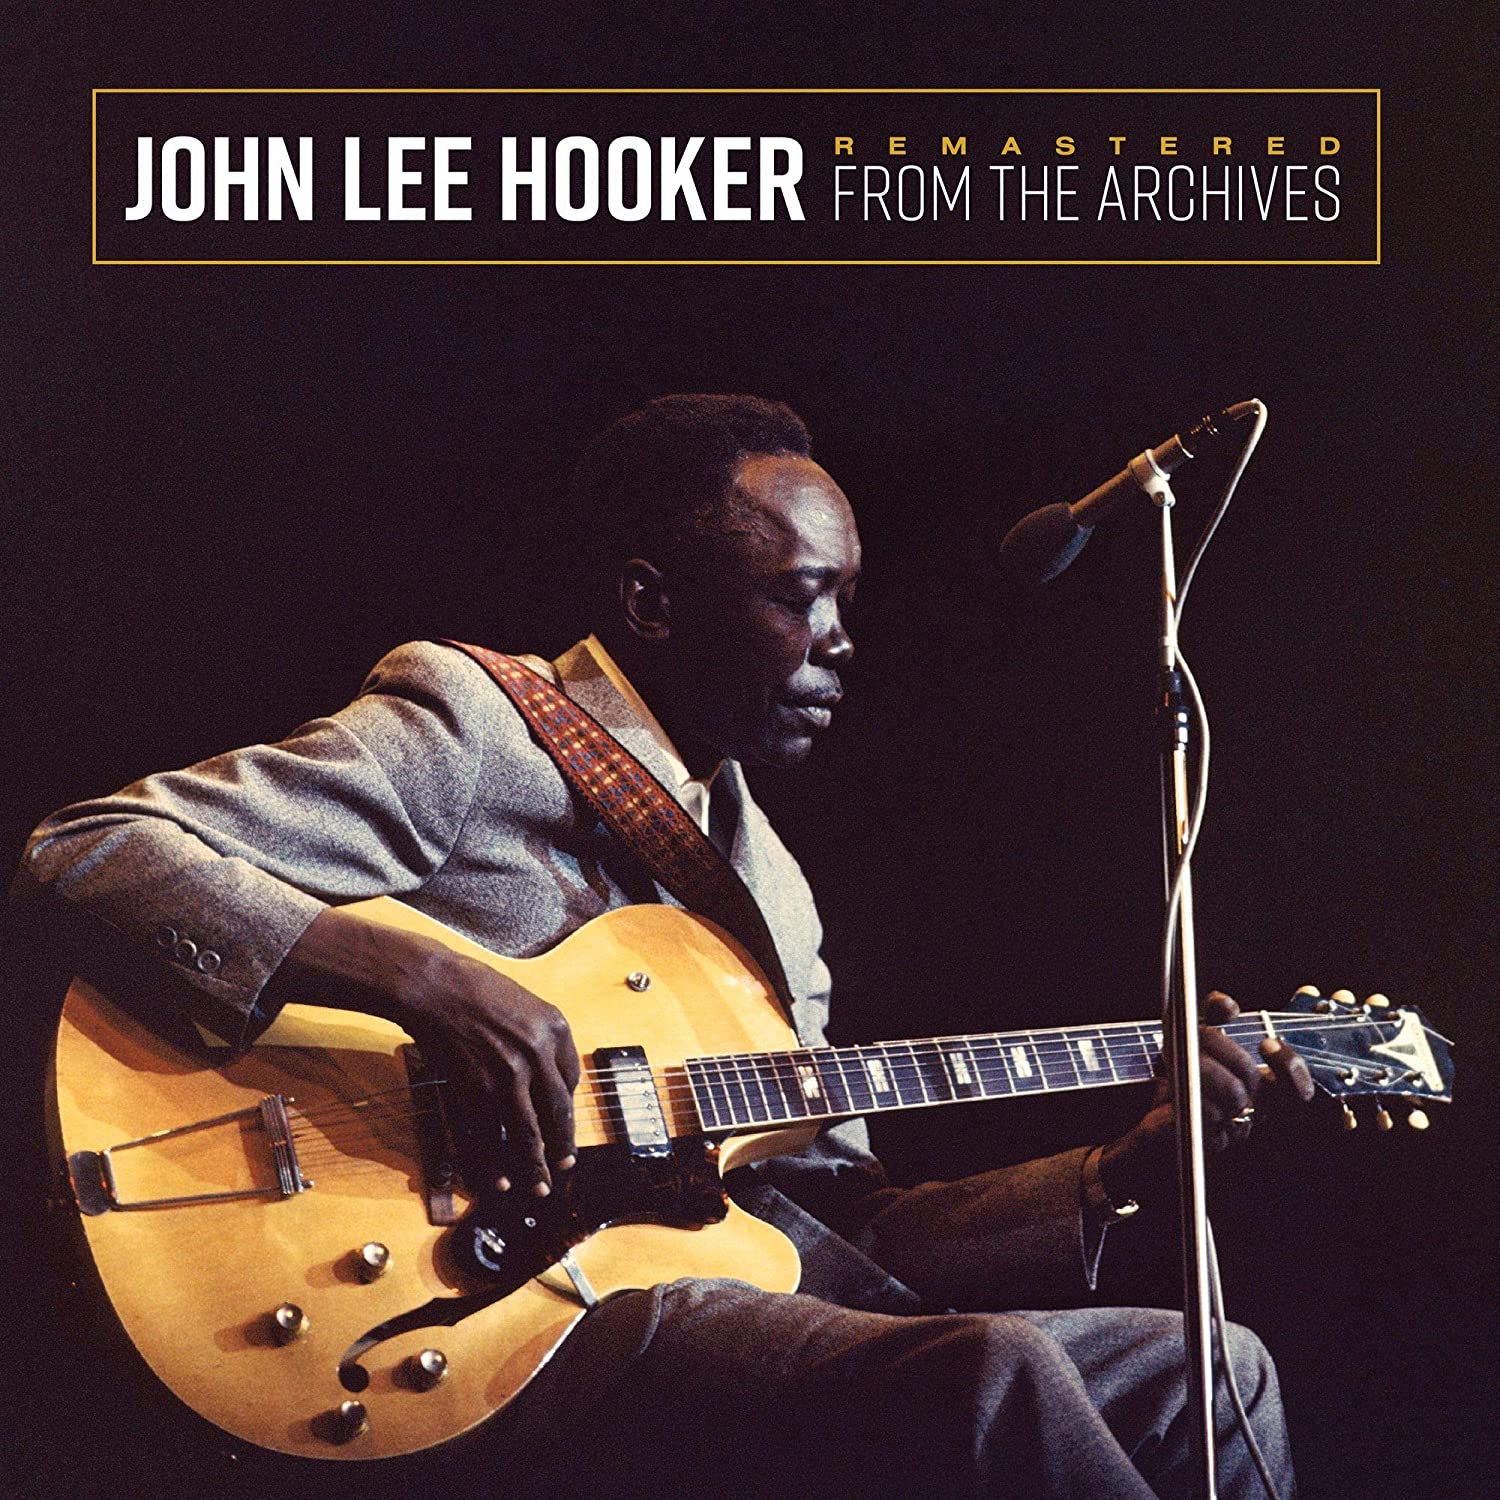 Hooker, John Lee/Remastered From The Archives [LP]